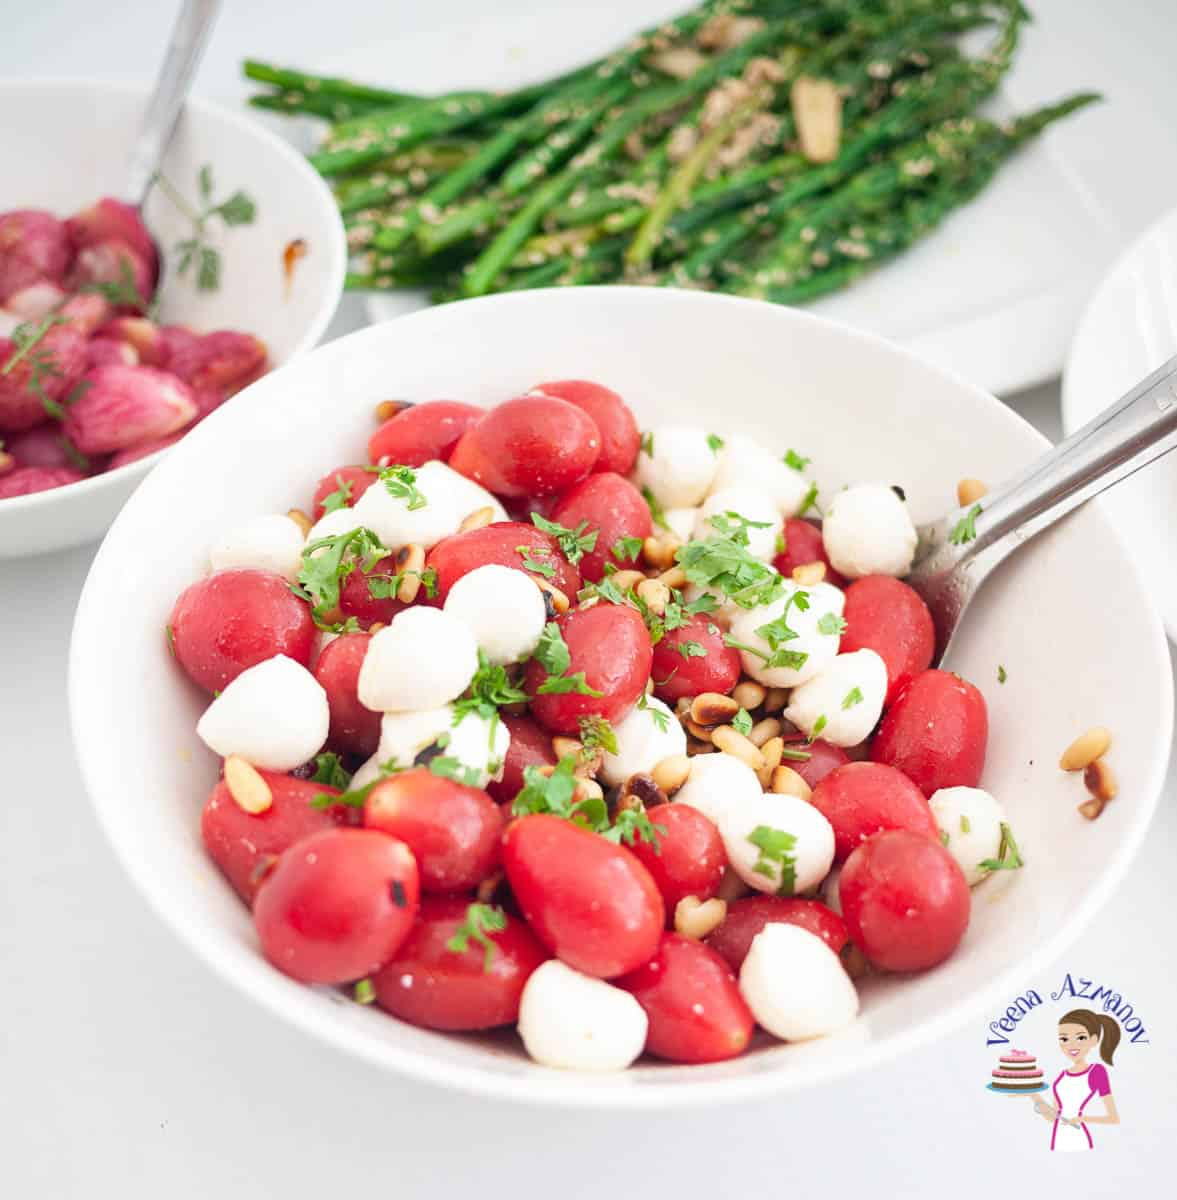 A bowl with tomatoes and mozzarella salad